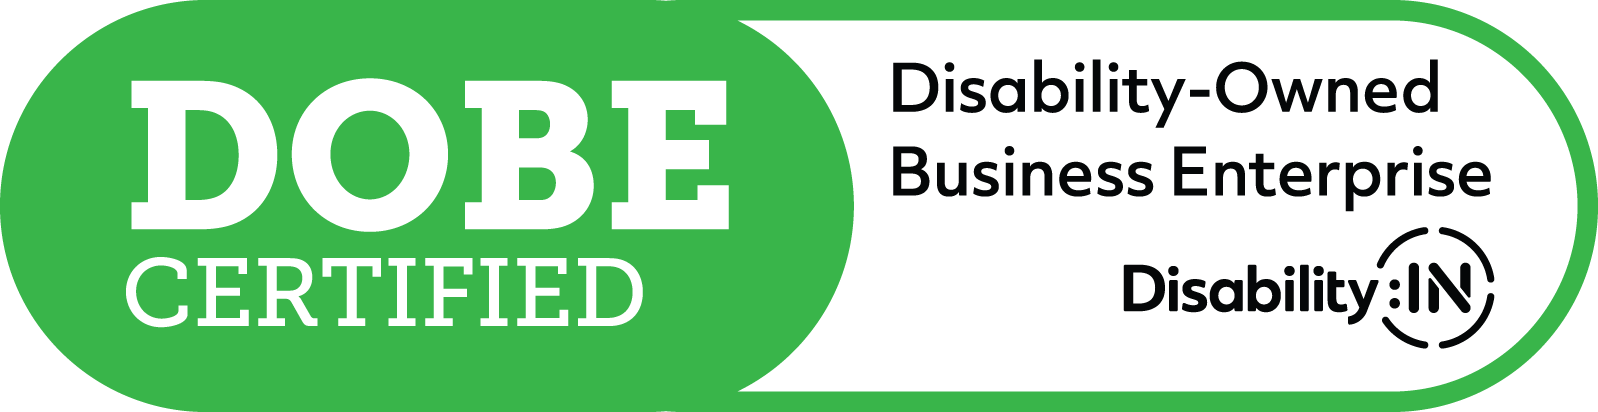 Disability-Owned Business Enterprise Certified